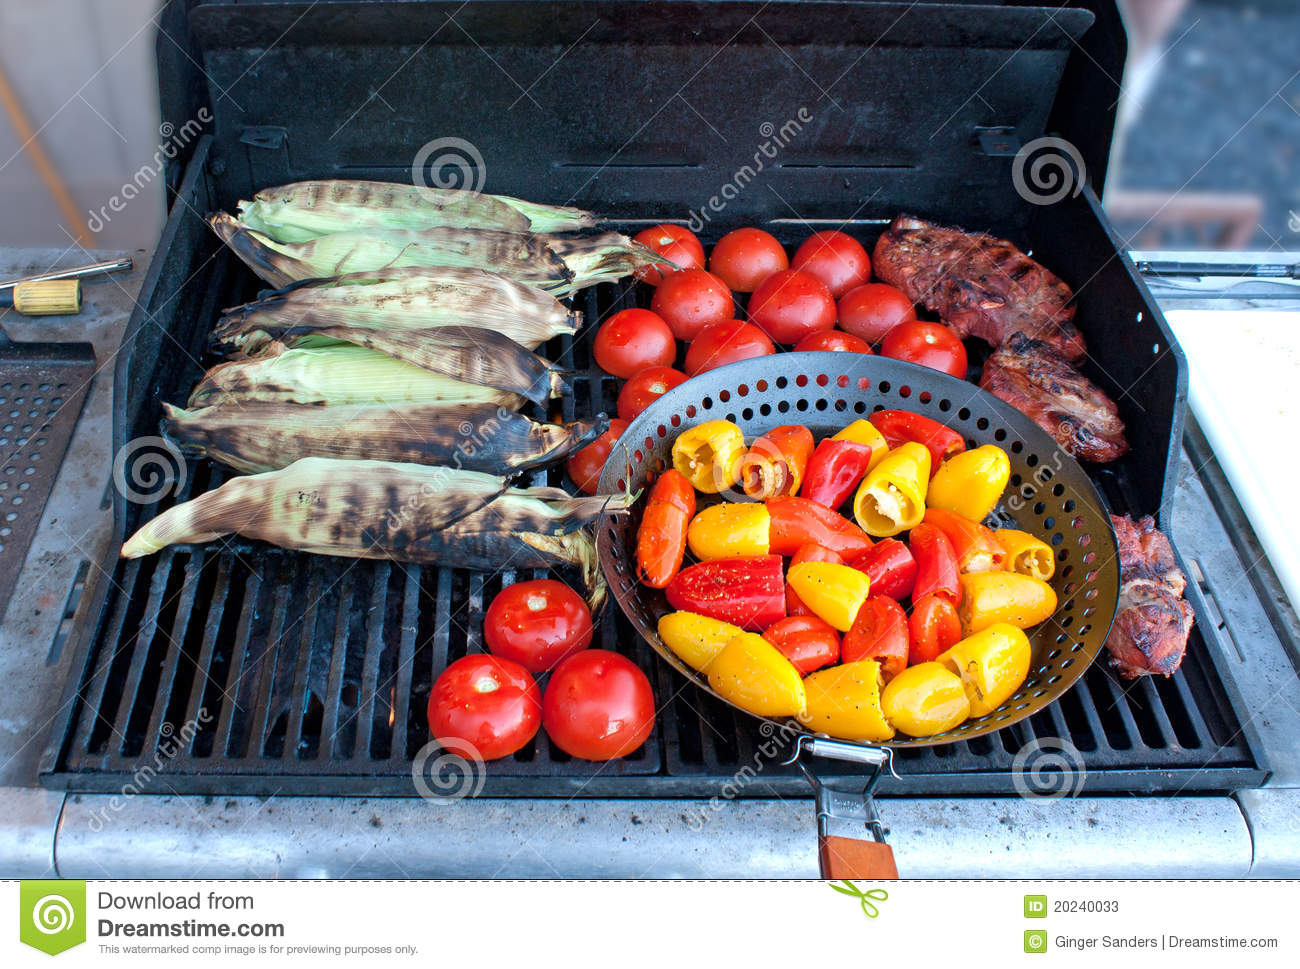 Bright Vegetables on A Barbeque Grill